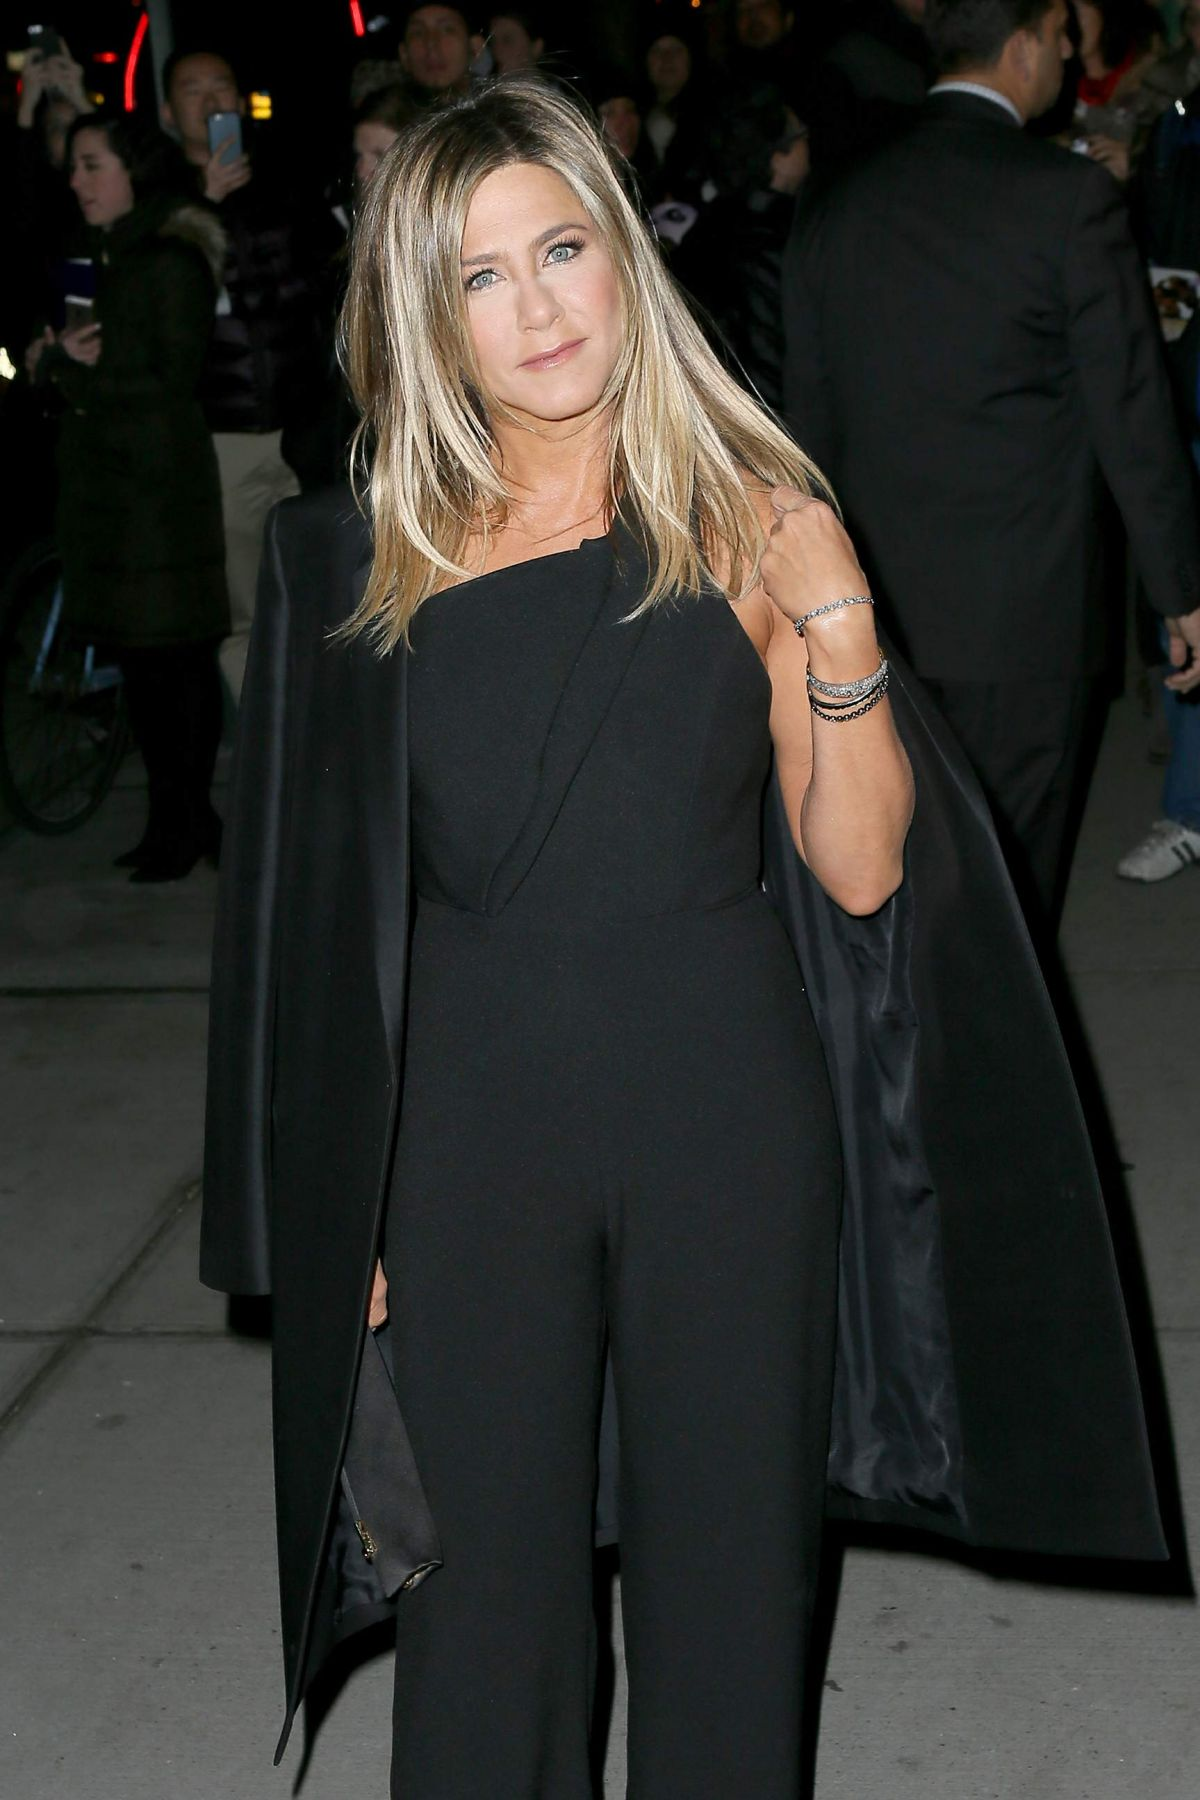 Jennifer Aniston Seen at 'Office Christmas Party' at Landmark Sunshine Cinema, NY   jennifer-aniston-seen-at-office-christmas-party-at-landmark-sunshine-cinema-ny_10